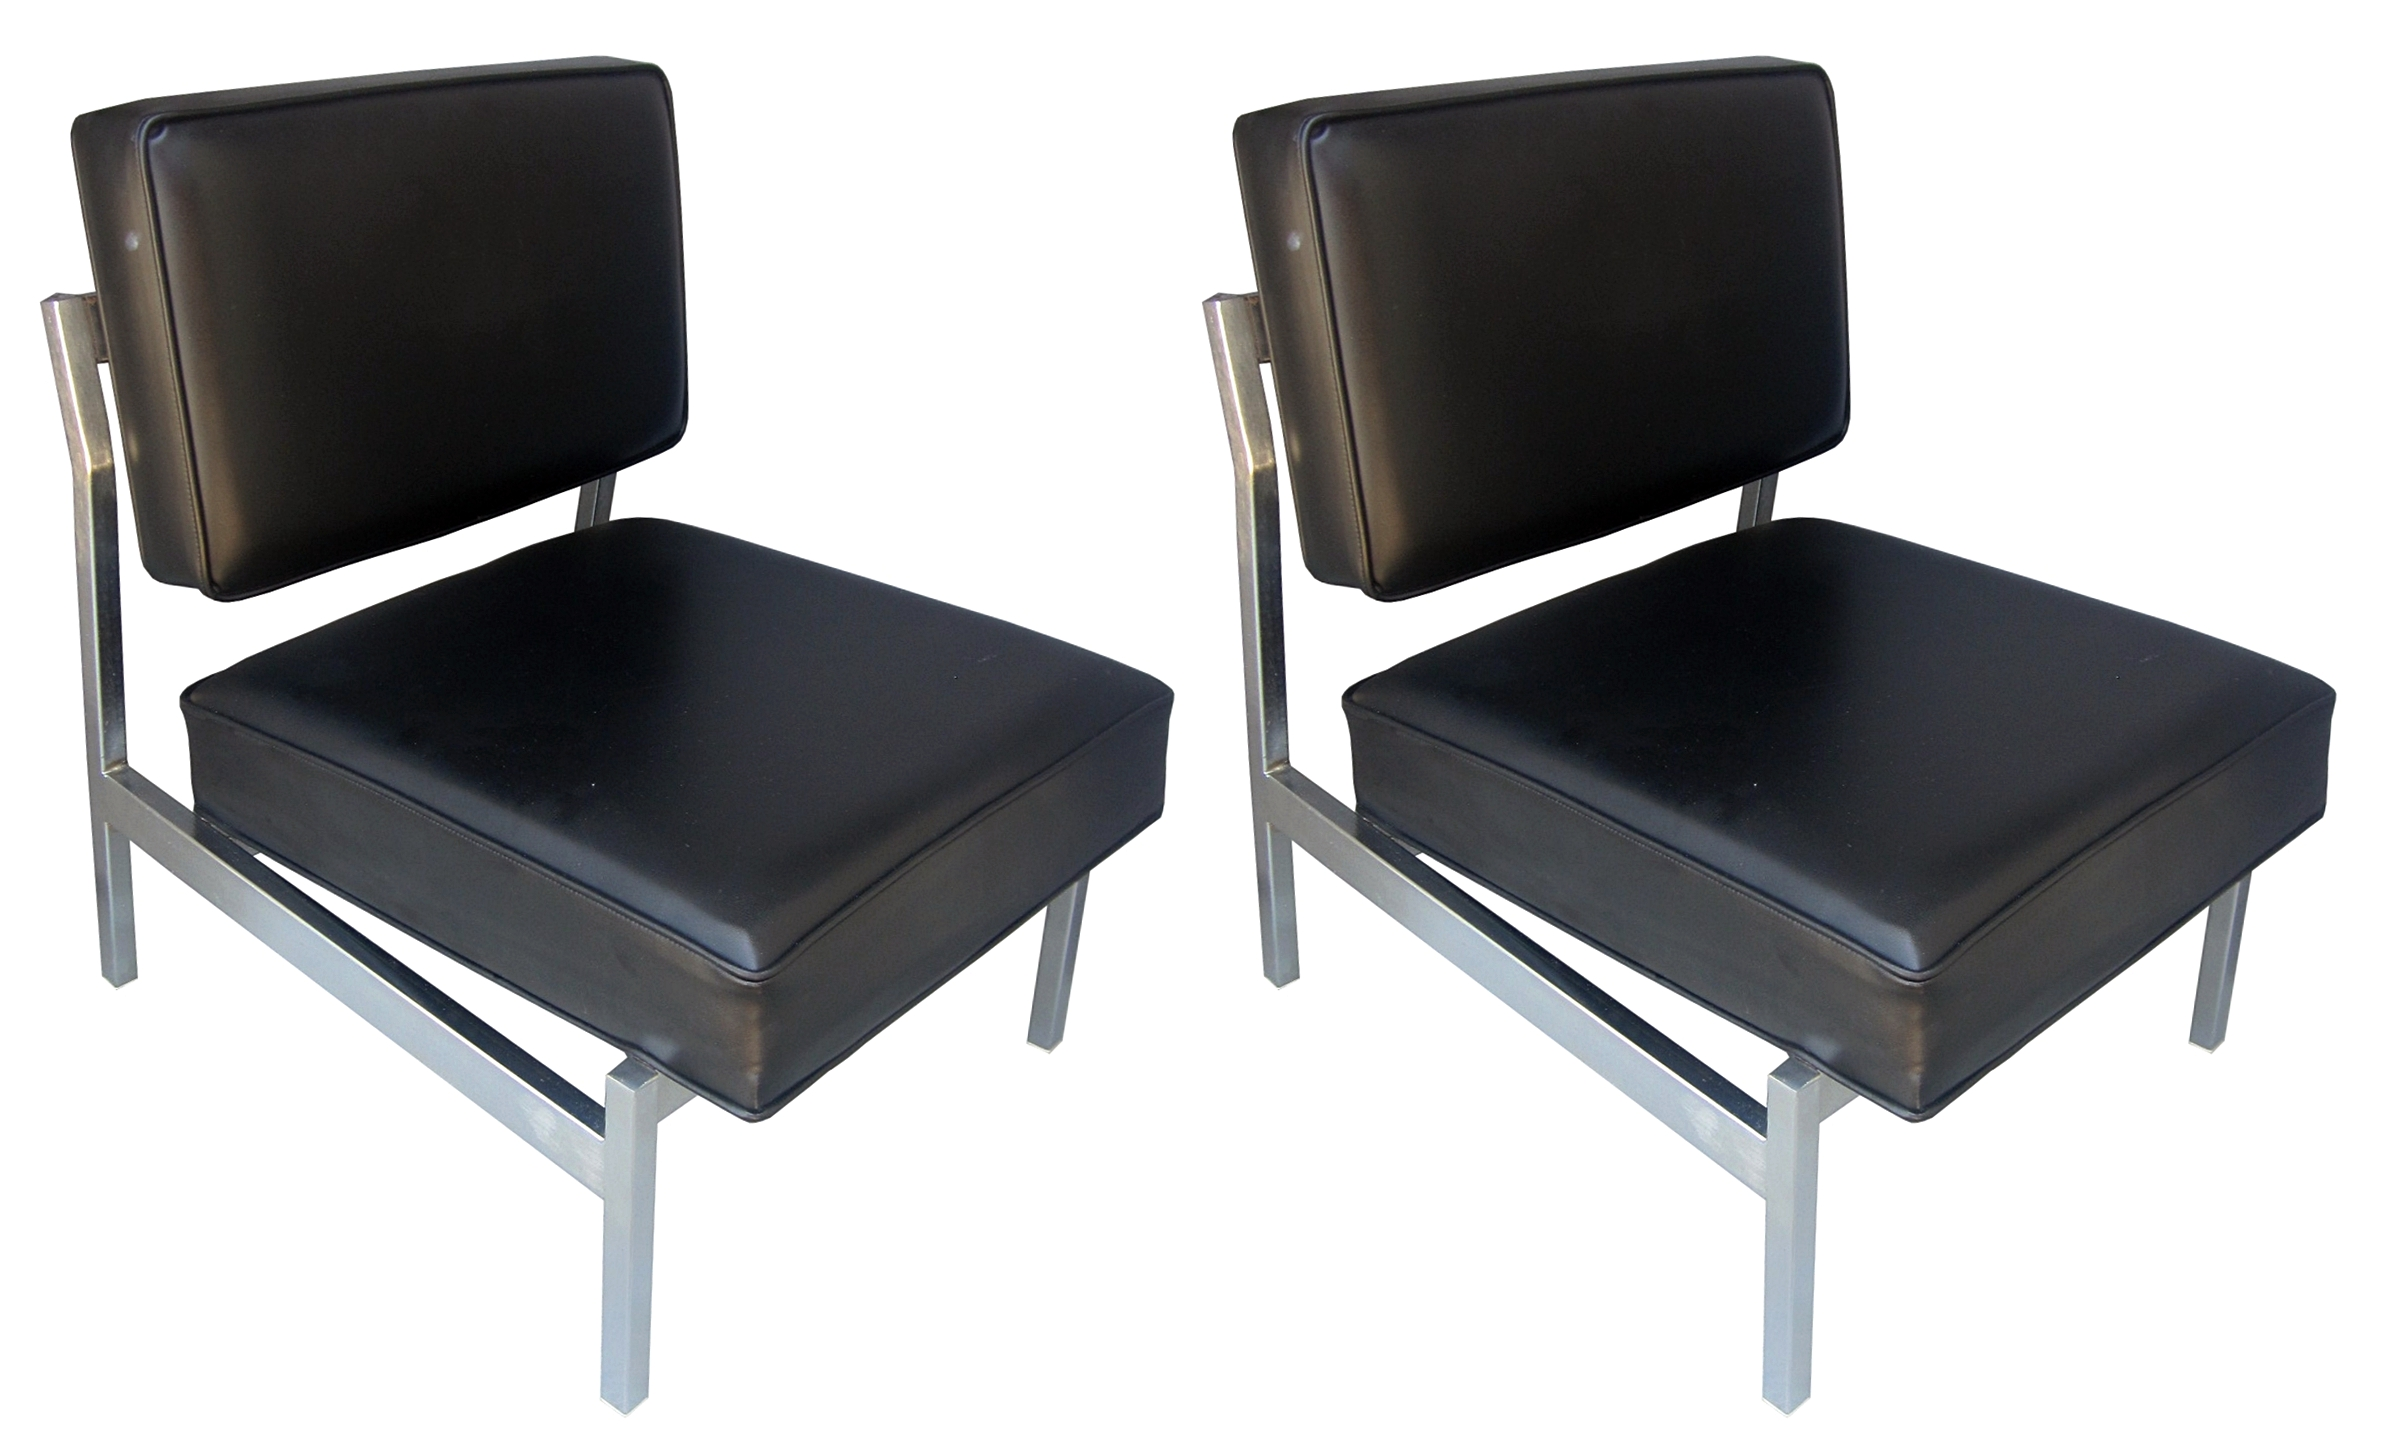 Superieur Florence Knoll Designed Slipper Chairs, Seamless Brushed Stainless Steel  Frames Upholstered In A Black Naugahyde Fabric. The Chairs Are In Very Good  Vintage ...